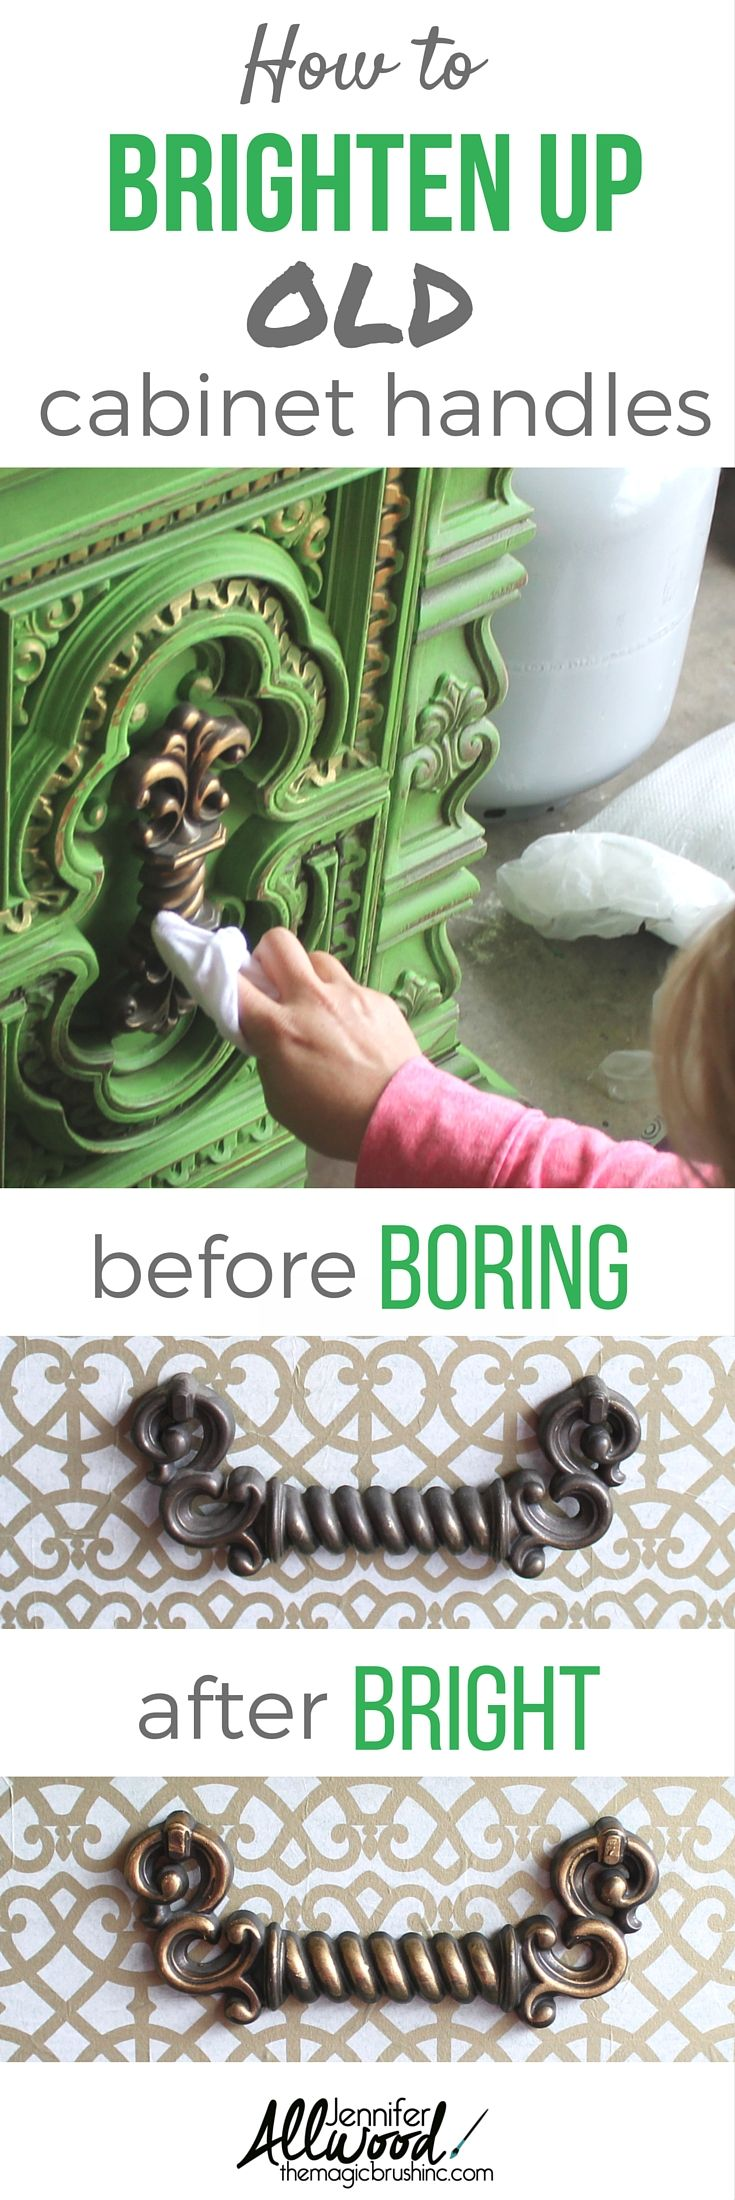 Give your furniture a facelift with revived handles! Here's how to brighten up dingy, old cabinet handles with Rub and Buff. More painting tips, DIY projects and furniture inspiration from theMagicBrushinc.com